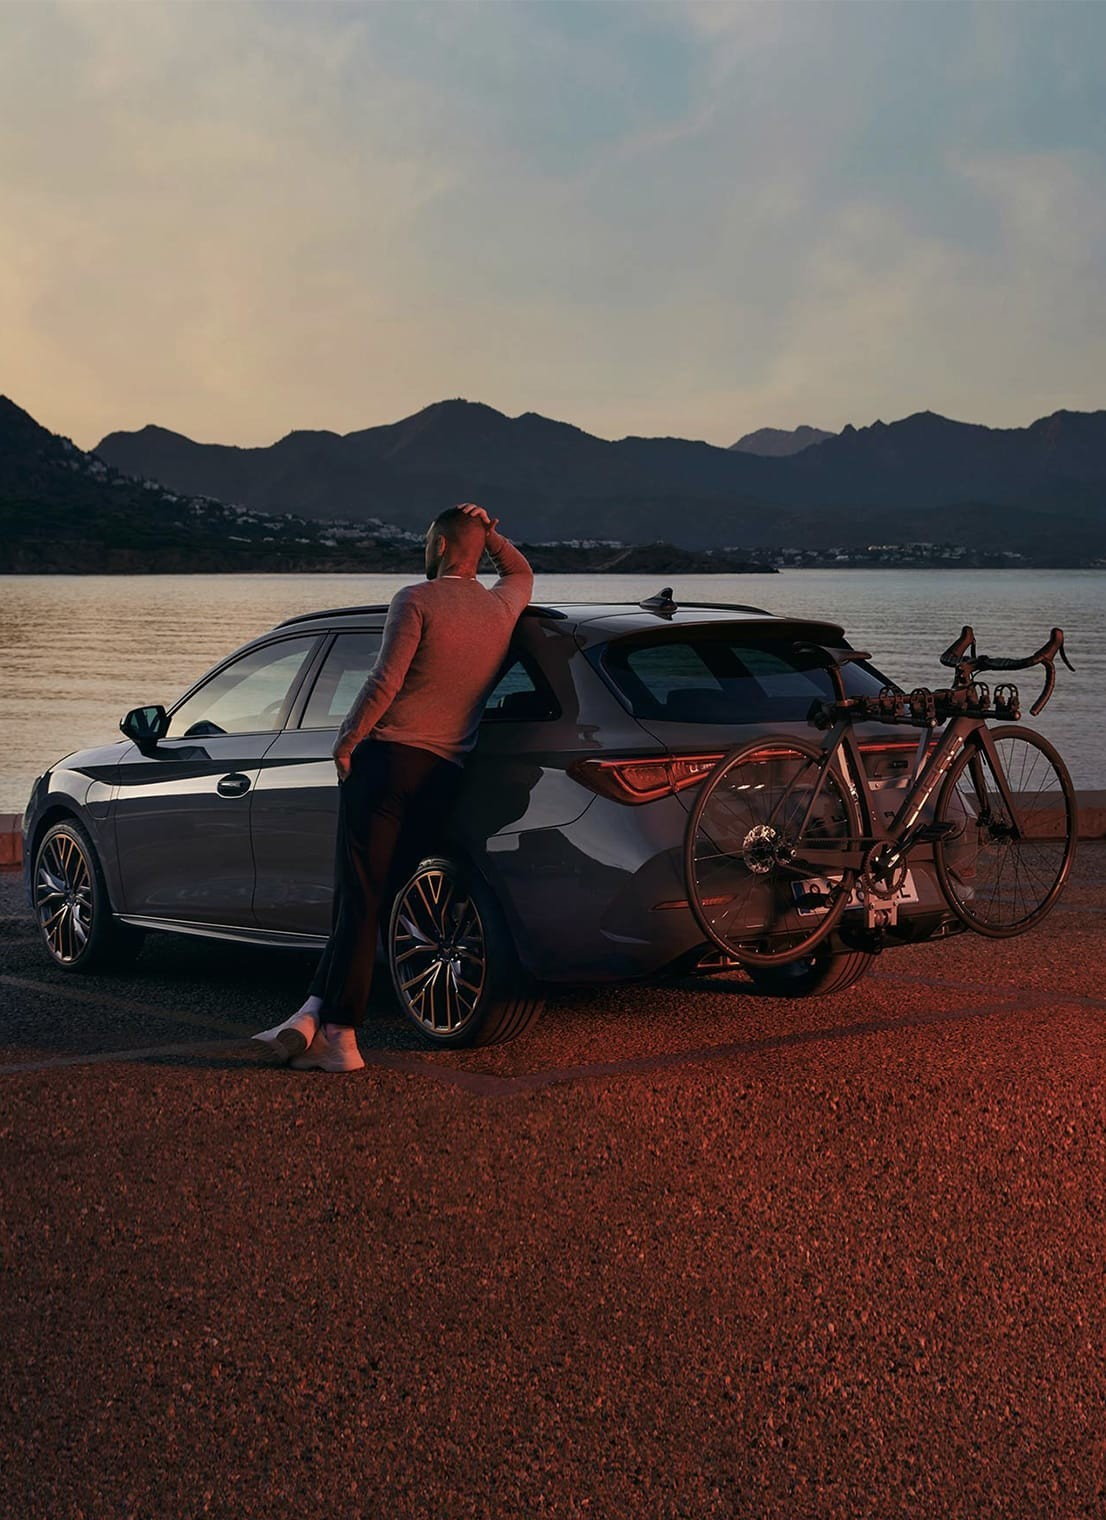 cupra-leon-sp-with-a-towing-bracket-bicycle-carrier.jpg